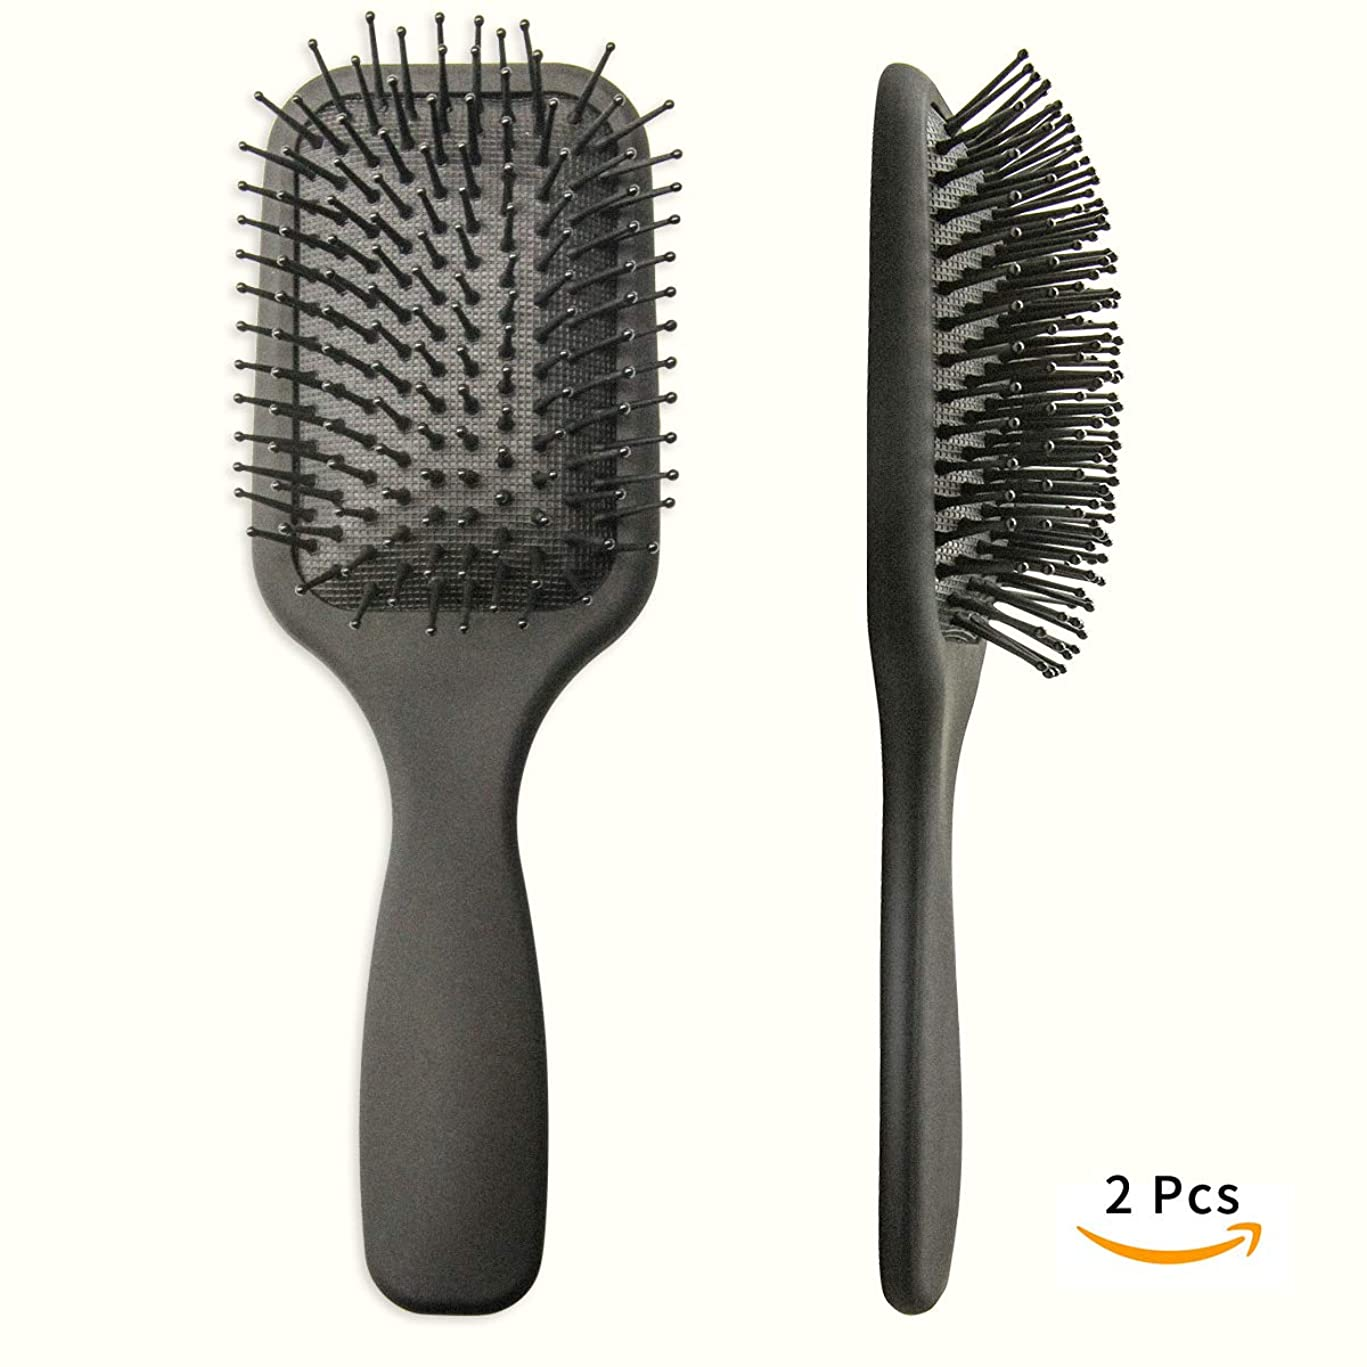 hiLISS 2 PCS Pro Paddle Brush With Nylon Round Head Pins,Cushioned brushes helps prevent damage like tearing and splitting, Improve hair Texture. (Matte Black)